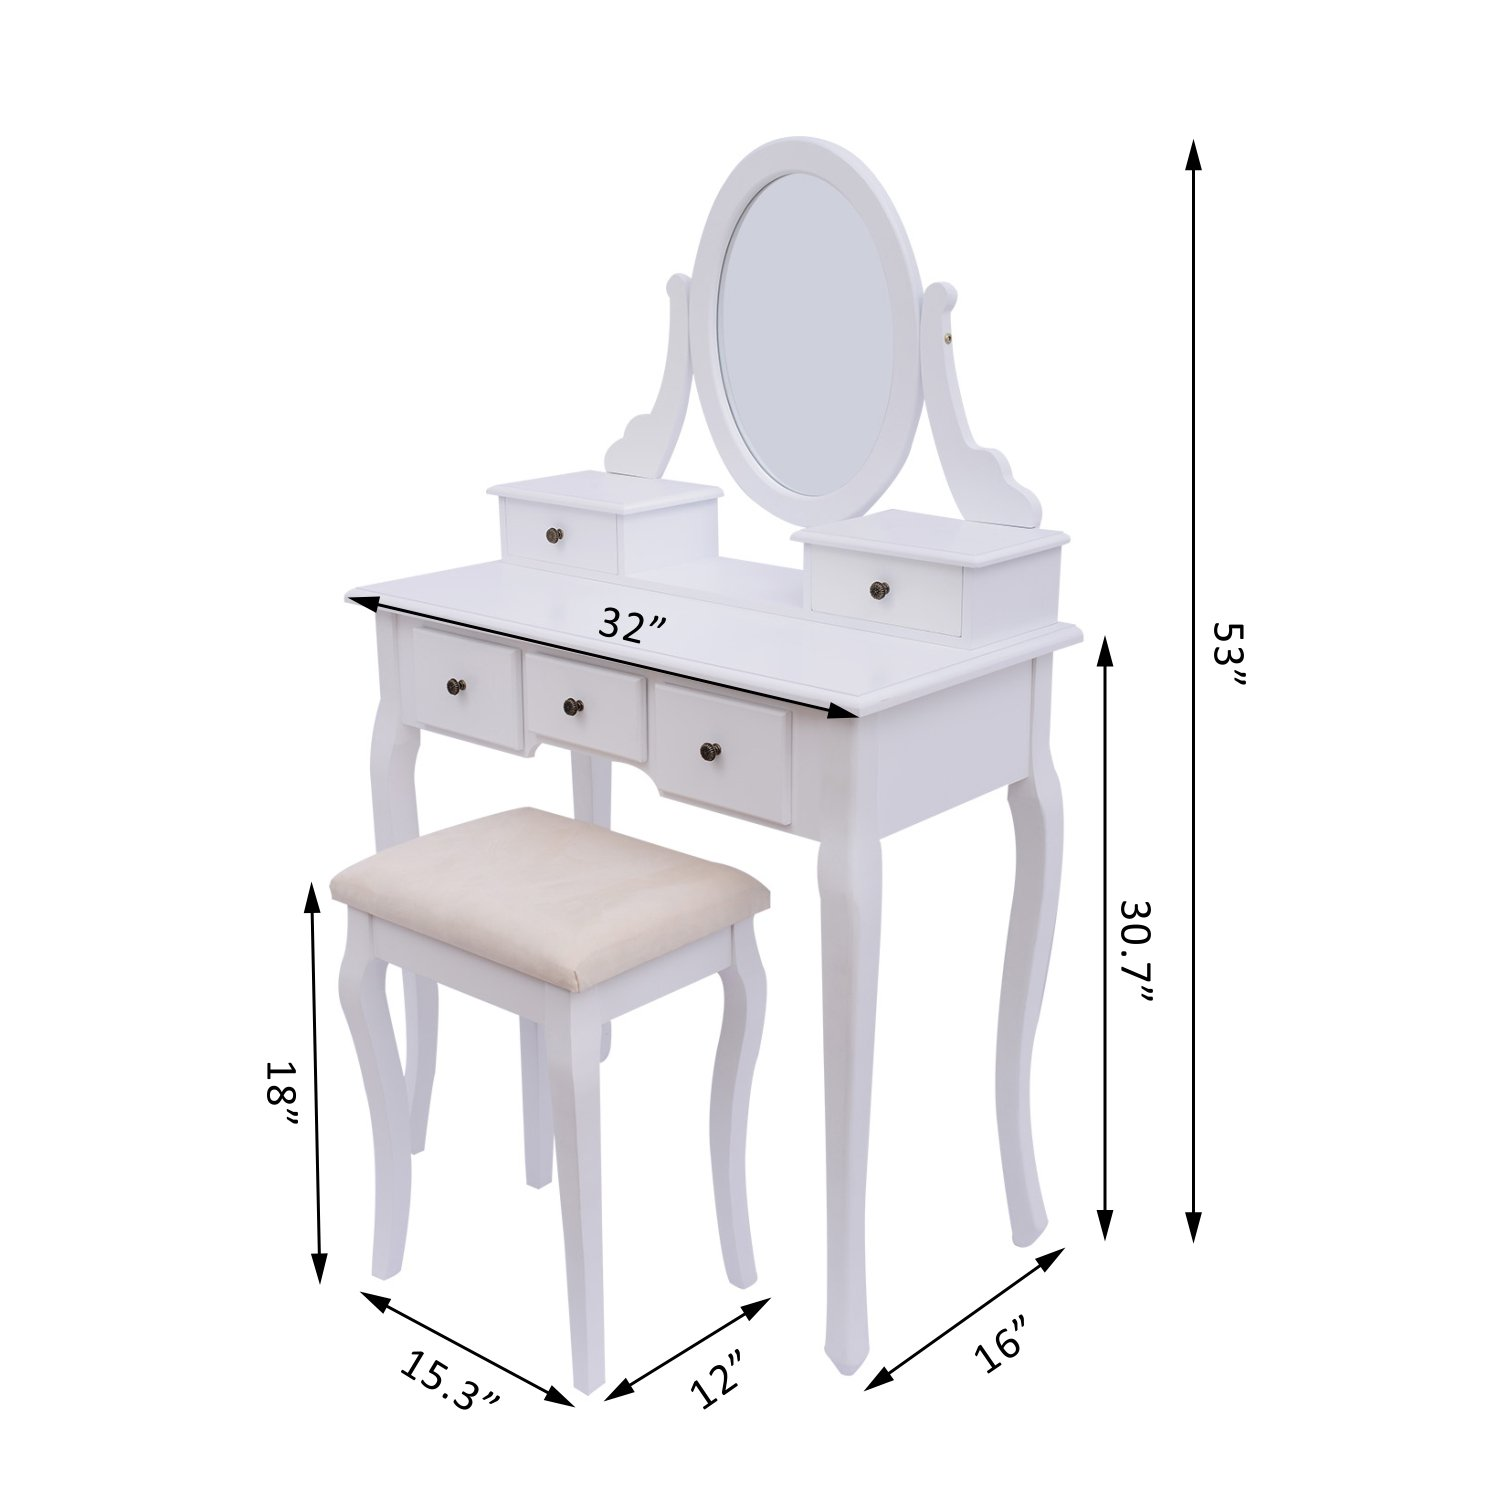 Vanity Table Dimensions Home Design Ideas And Pictures